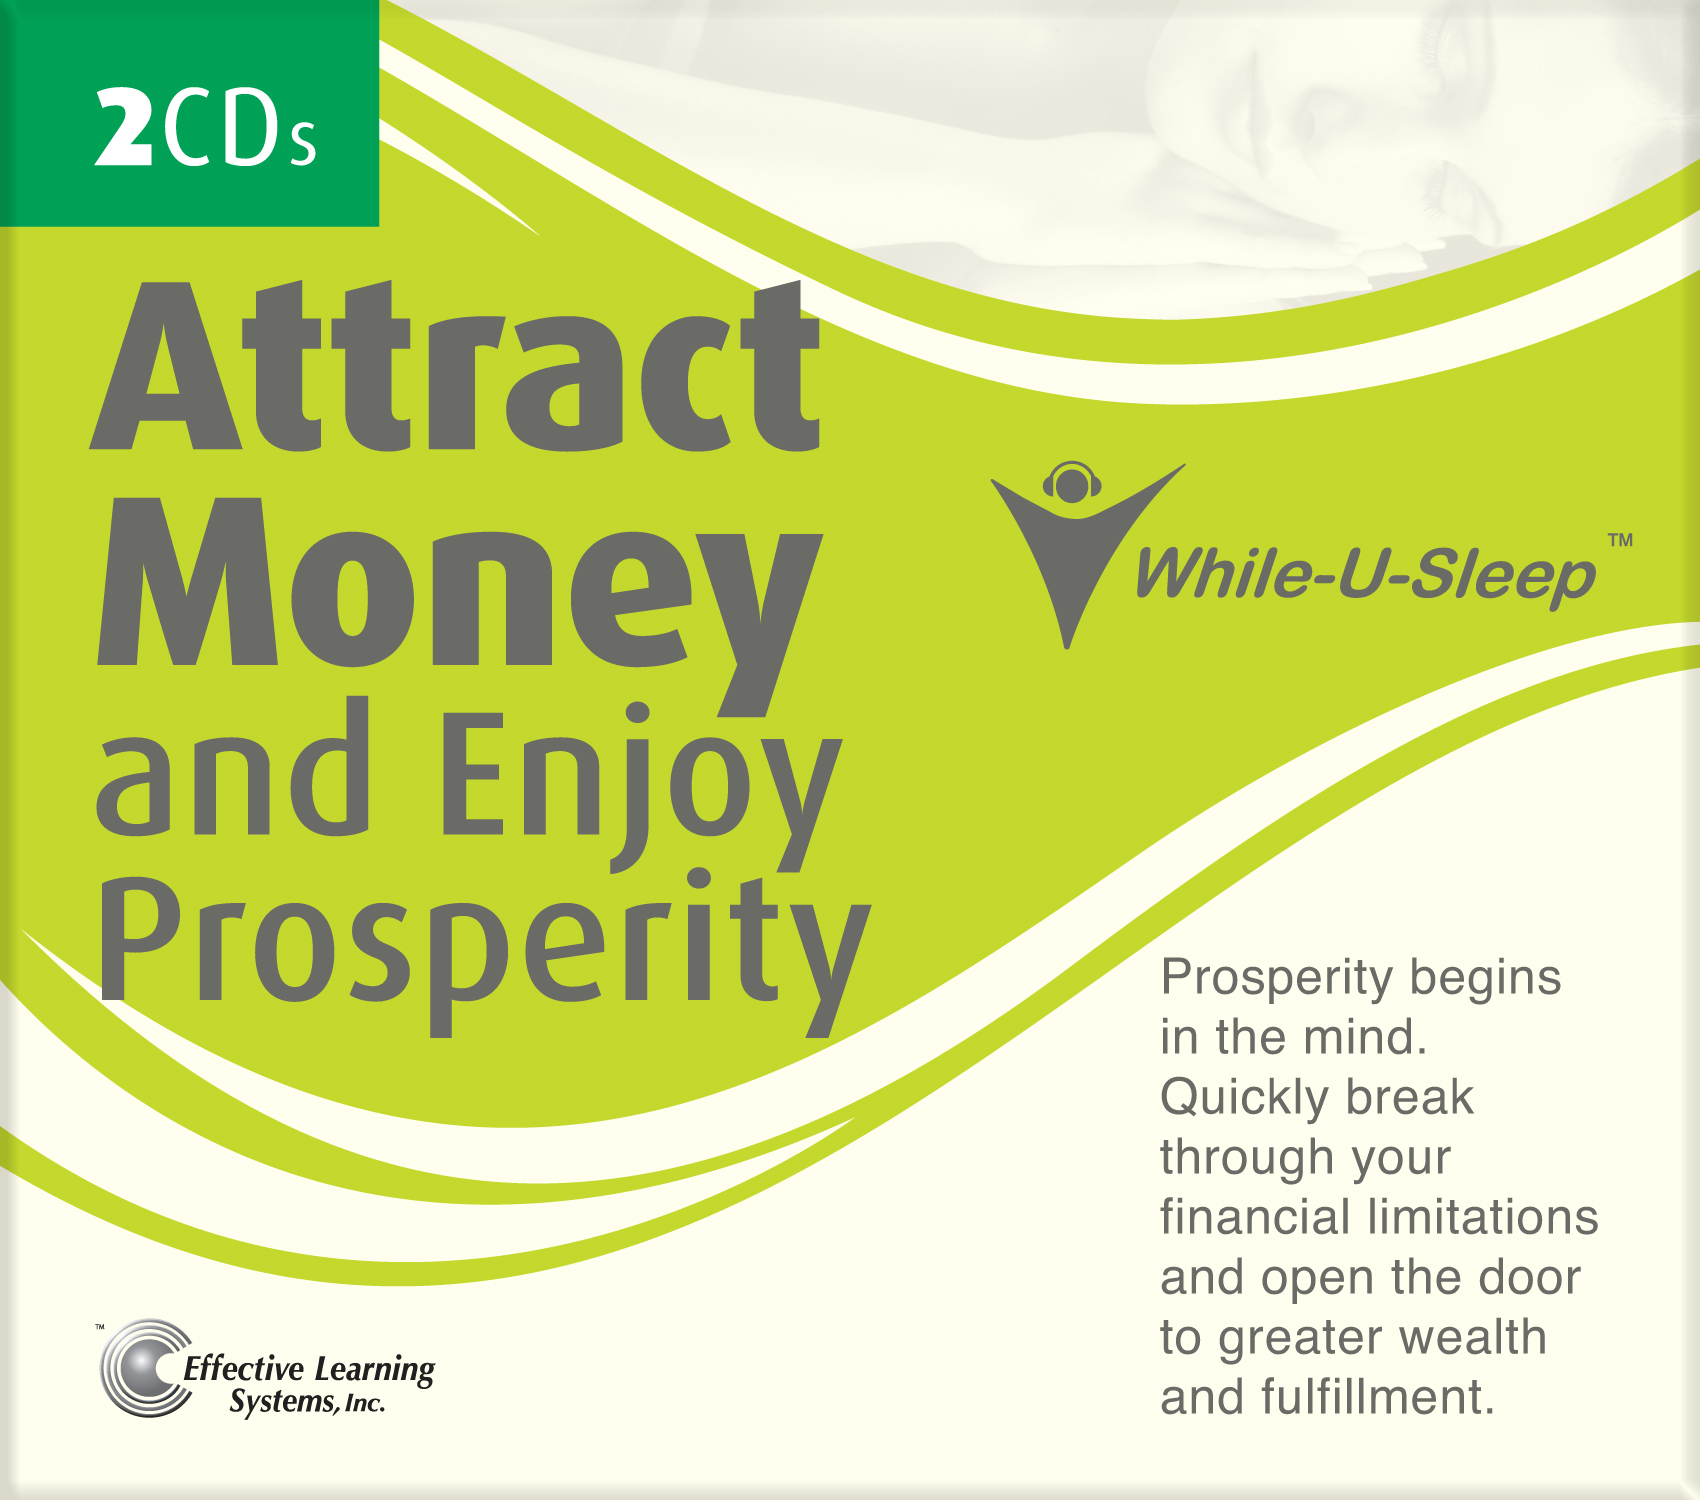 Develop your mind to attract money and enjoy prosperity